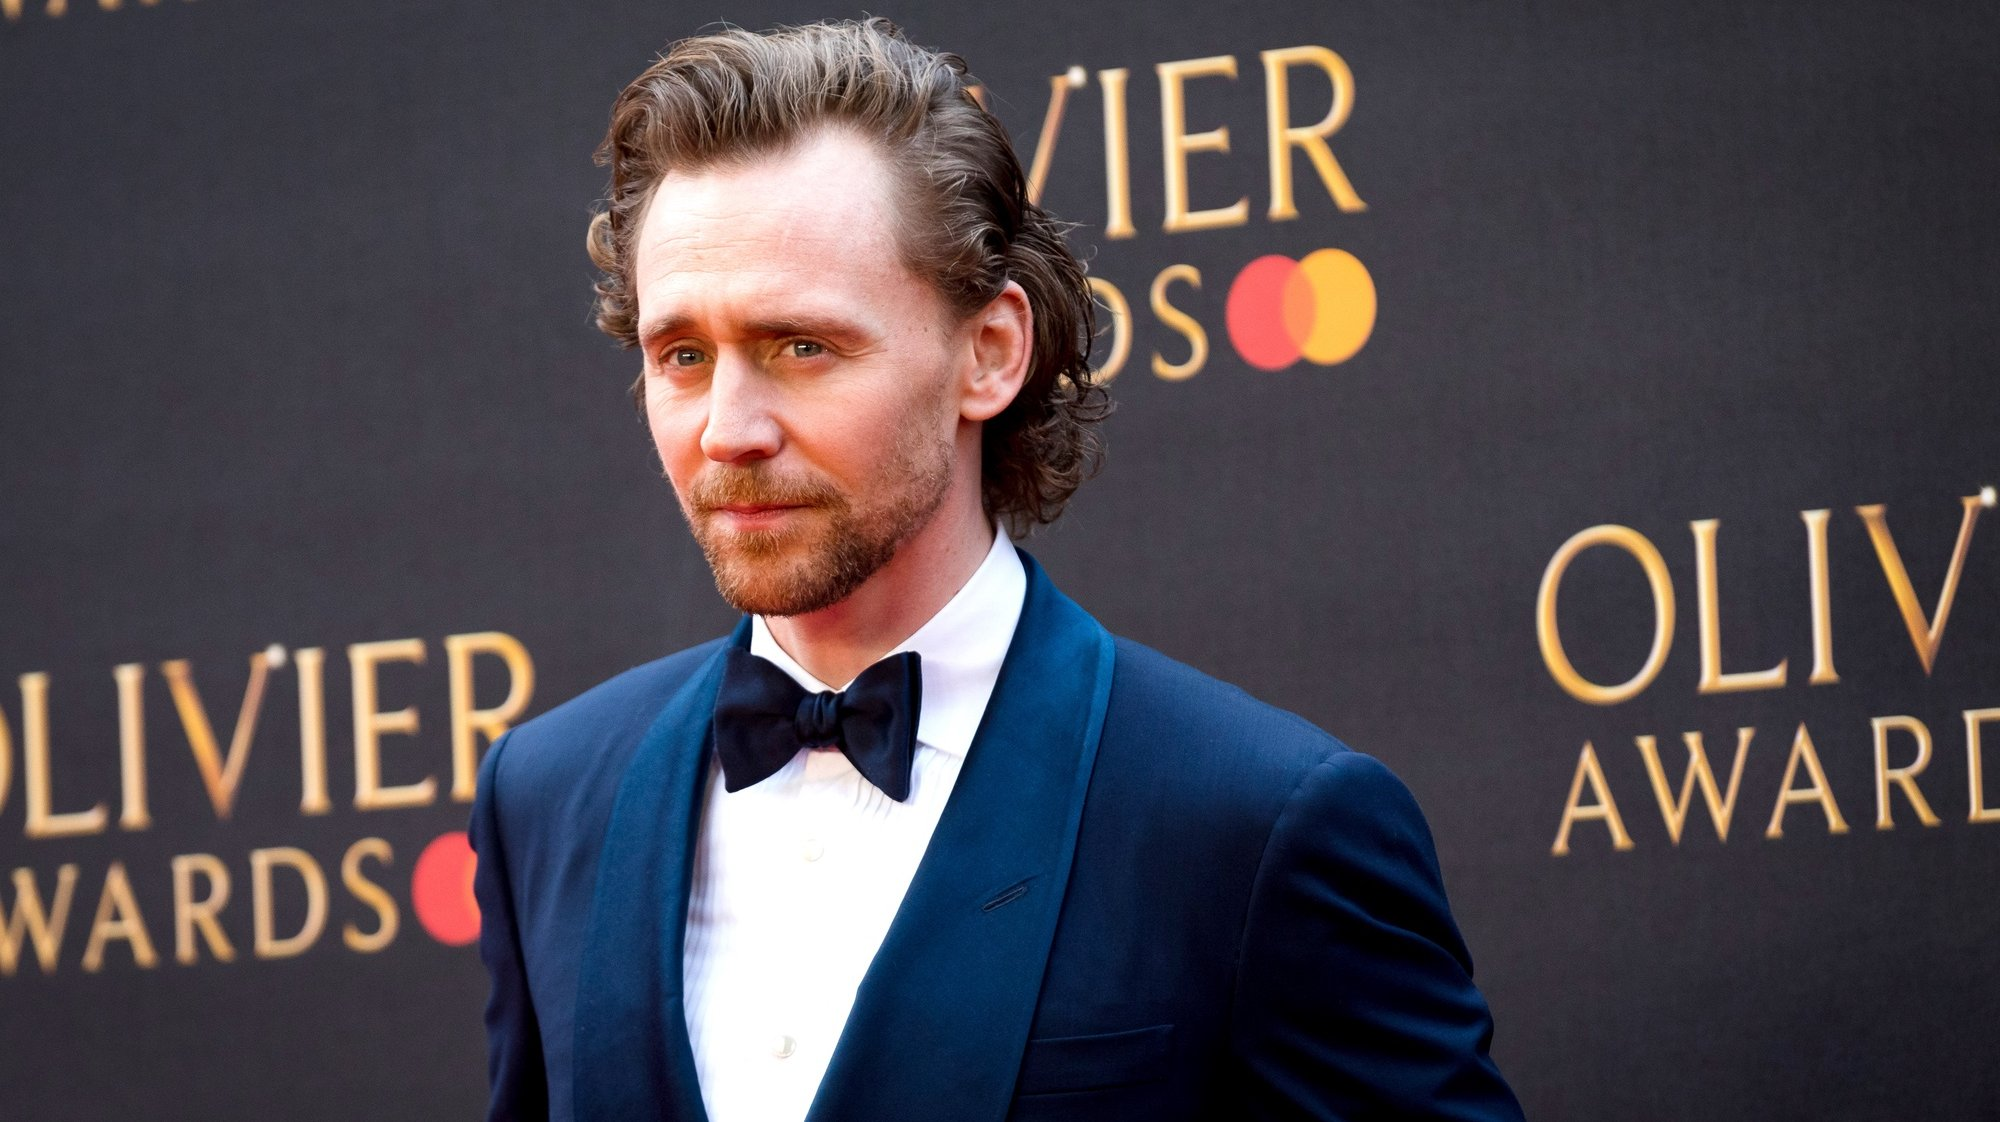 epa07490901 British actor Tom Hiddleston arrives at the Olivier Awards at the Royal Albert Hall in London, Britain, 07 April 2019. The Olivier Awards are awarded for outstanding achievements in British theatre.  EPA/VICKIE FLORES